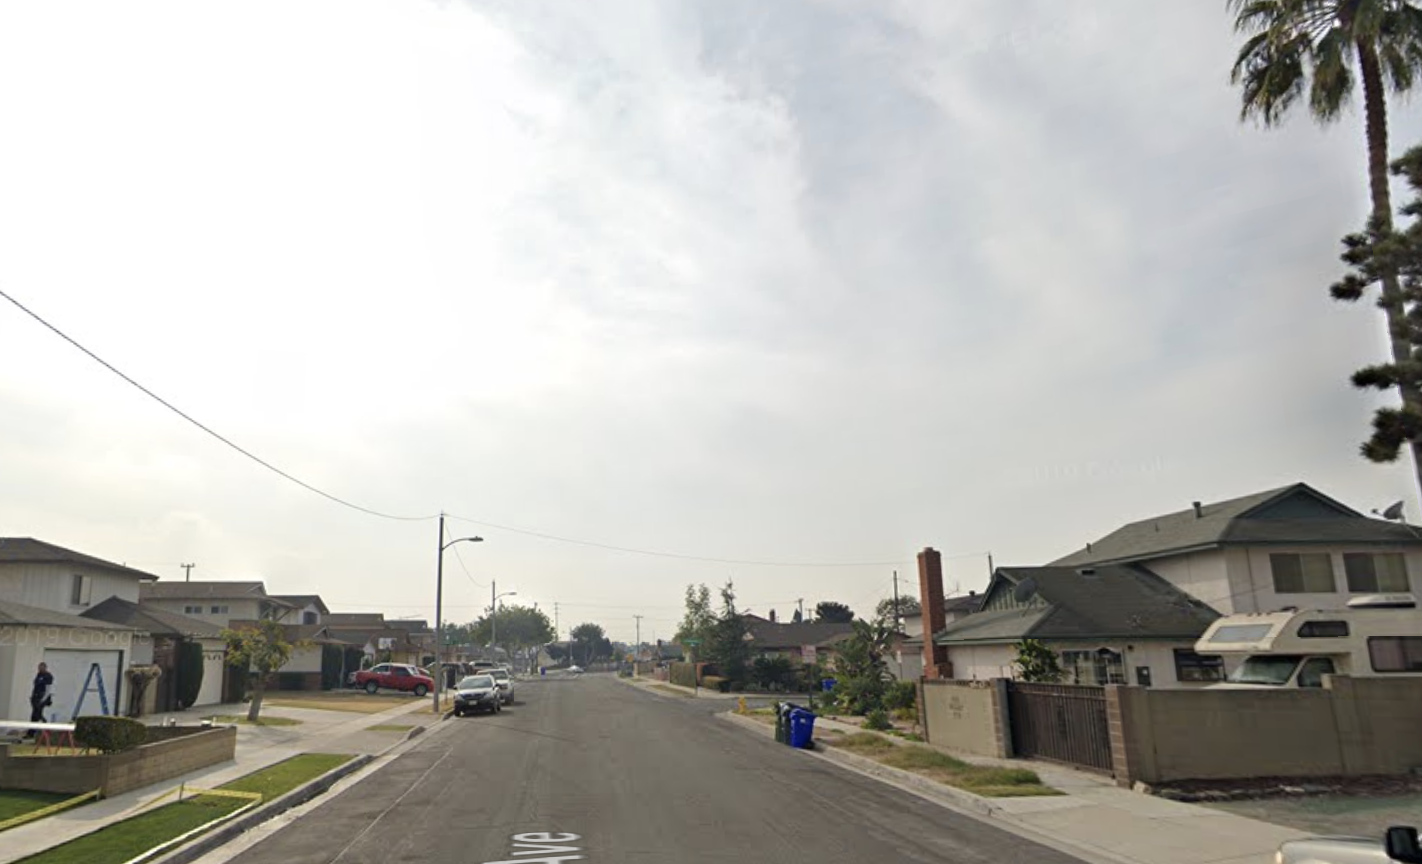 The 21700 block of South Acarus Avenue appears in an image from Google Maps.